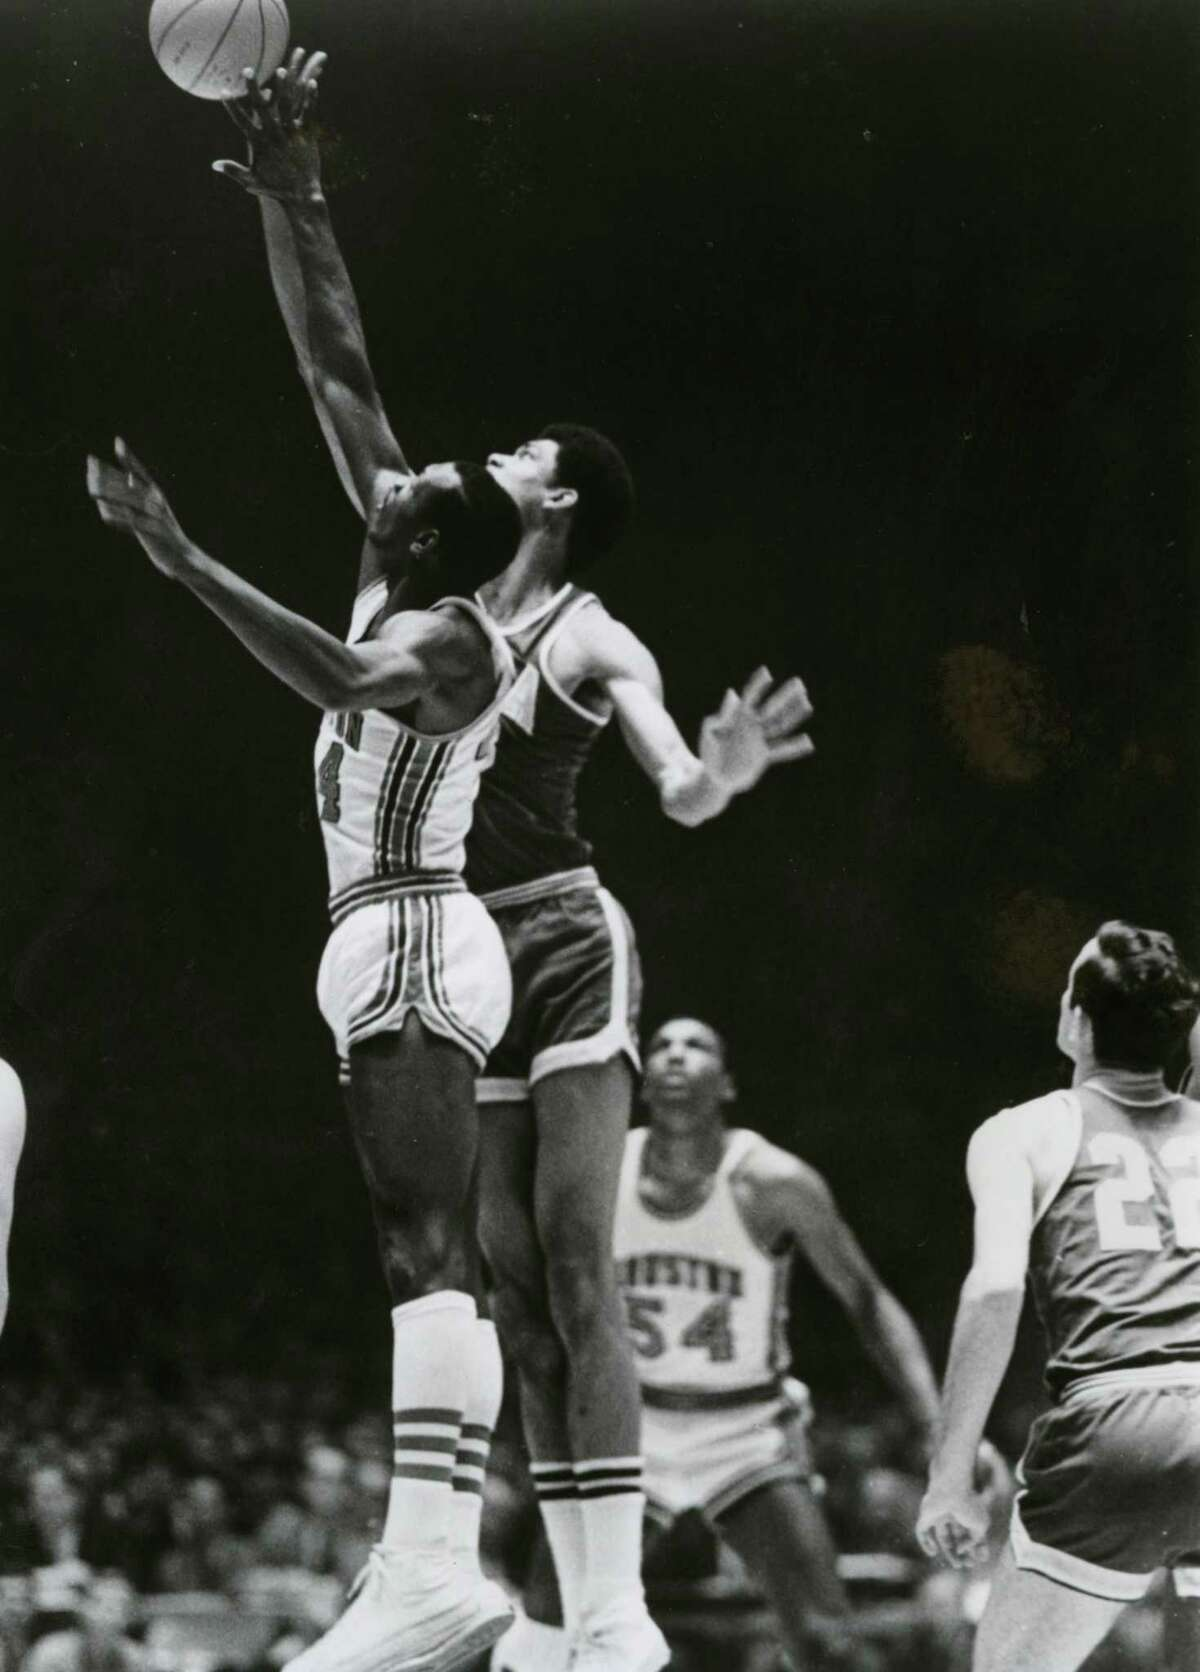 Elvin Hayes and Lew Alcindor get the 'Game of the Century' started with a jump ball in 1968.